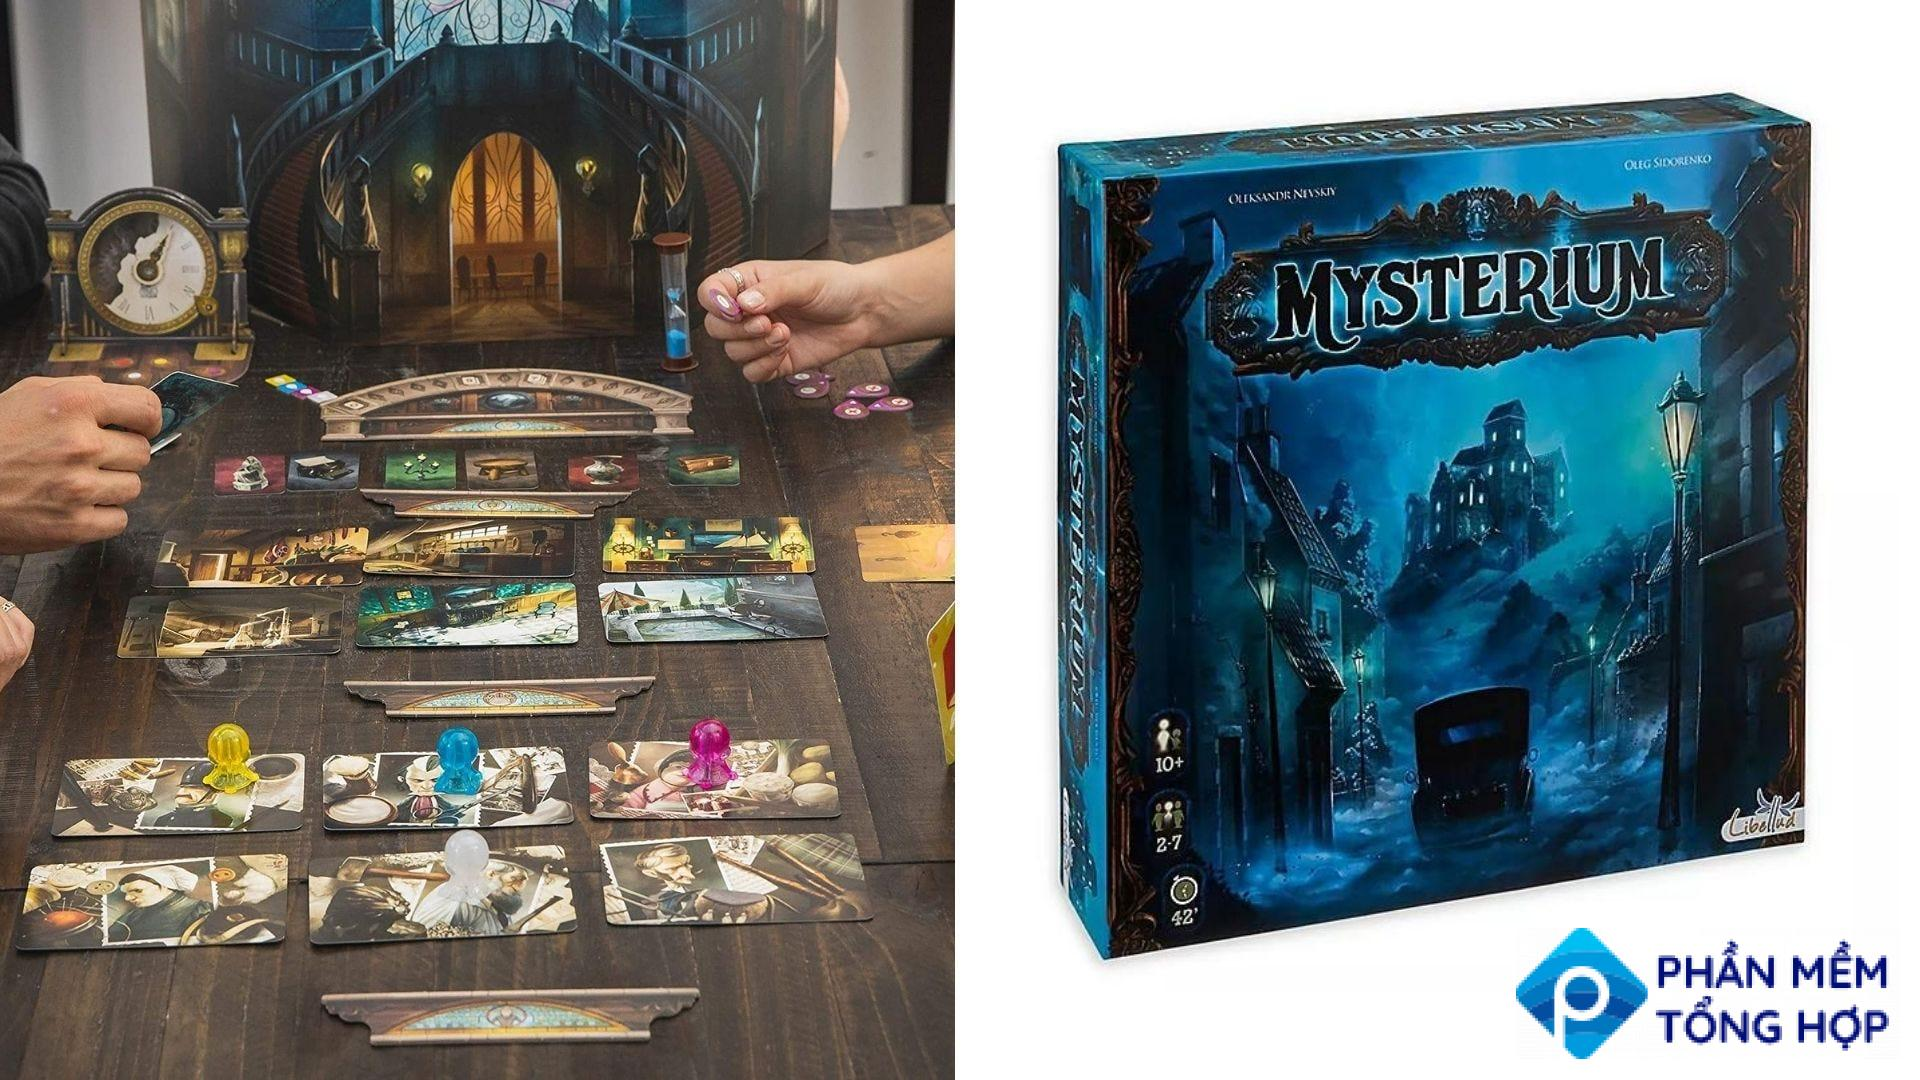 The 'Mysterium' gameboard, pieces, and box.